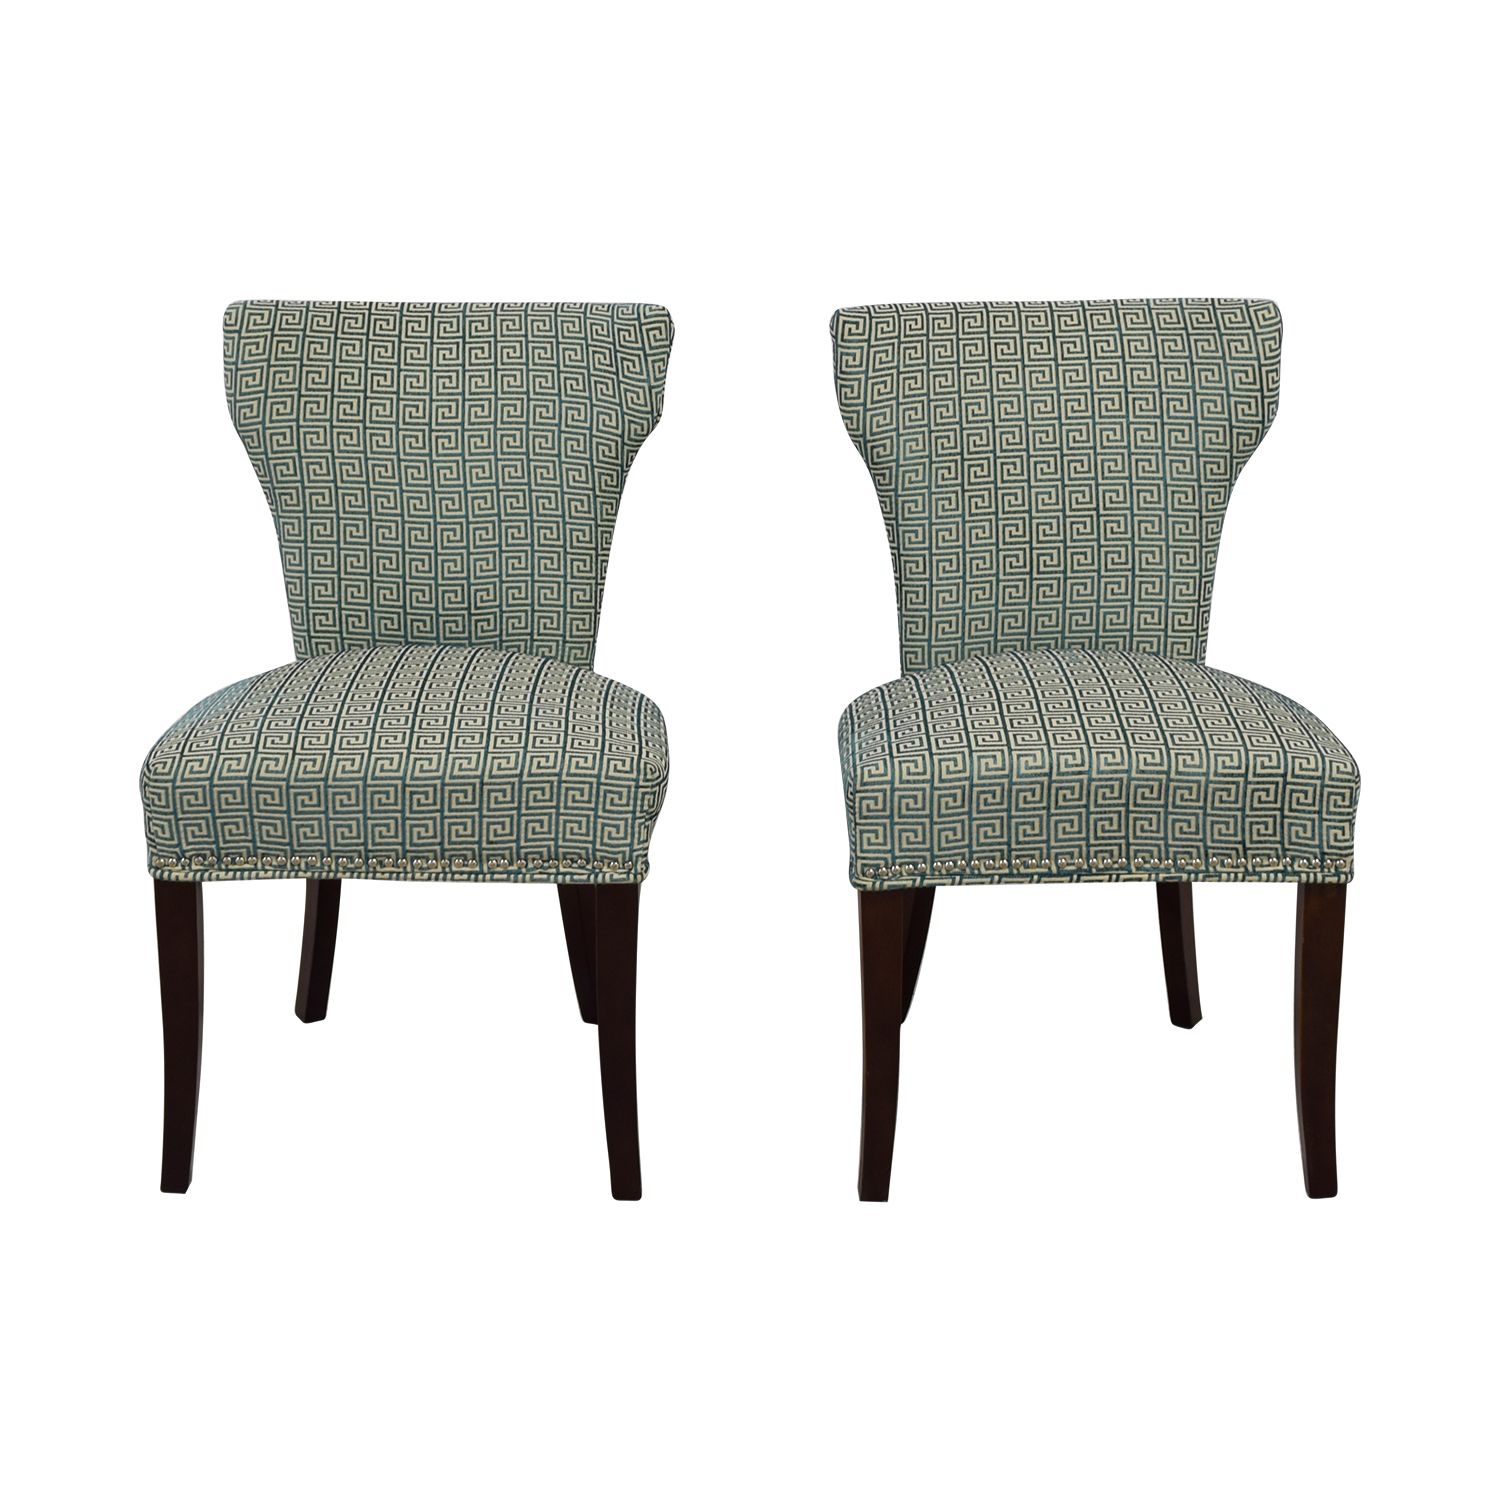 Cynthia Rowley Accent Chairs Cynthia Rowley